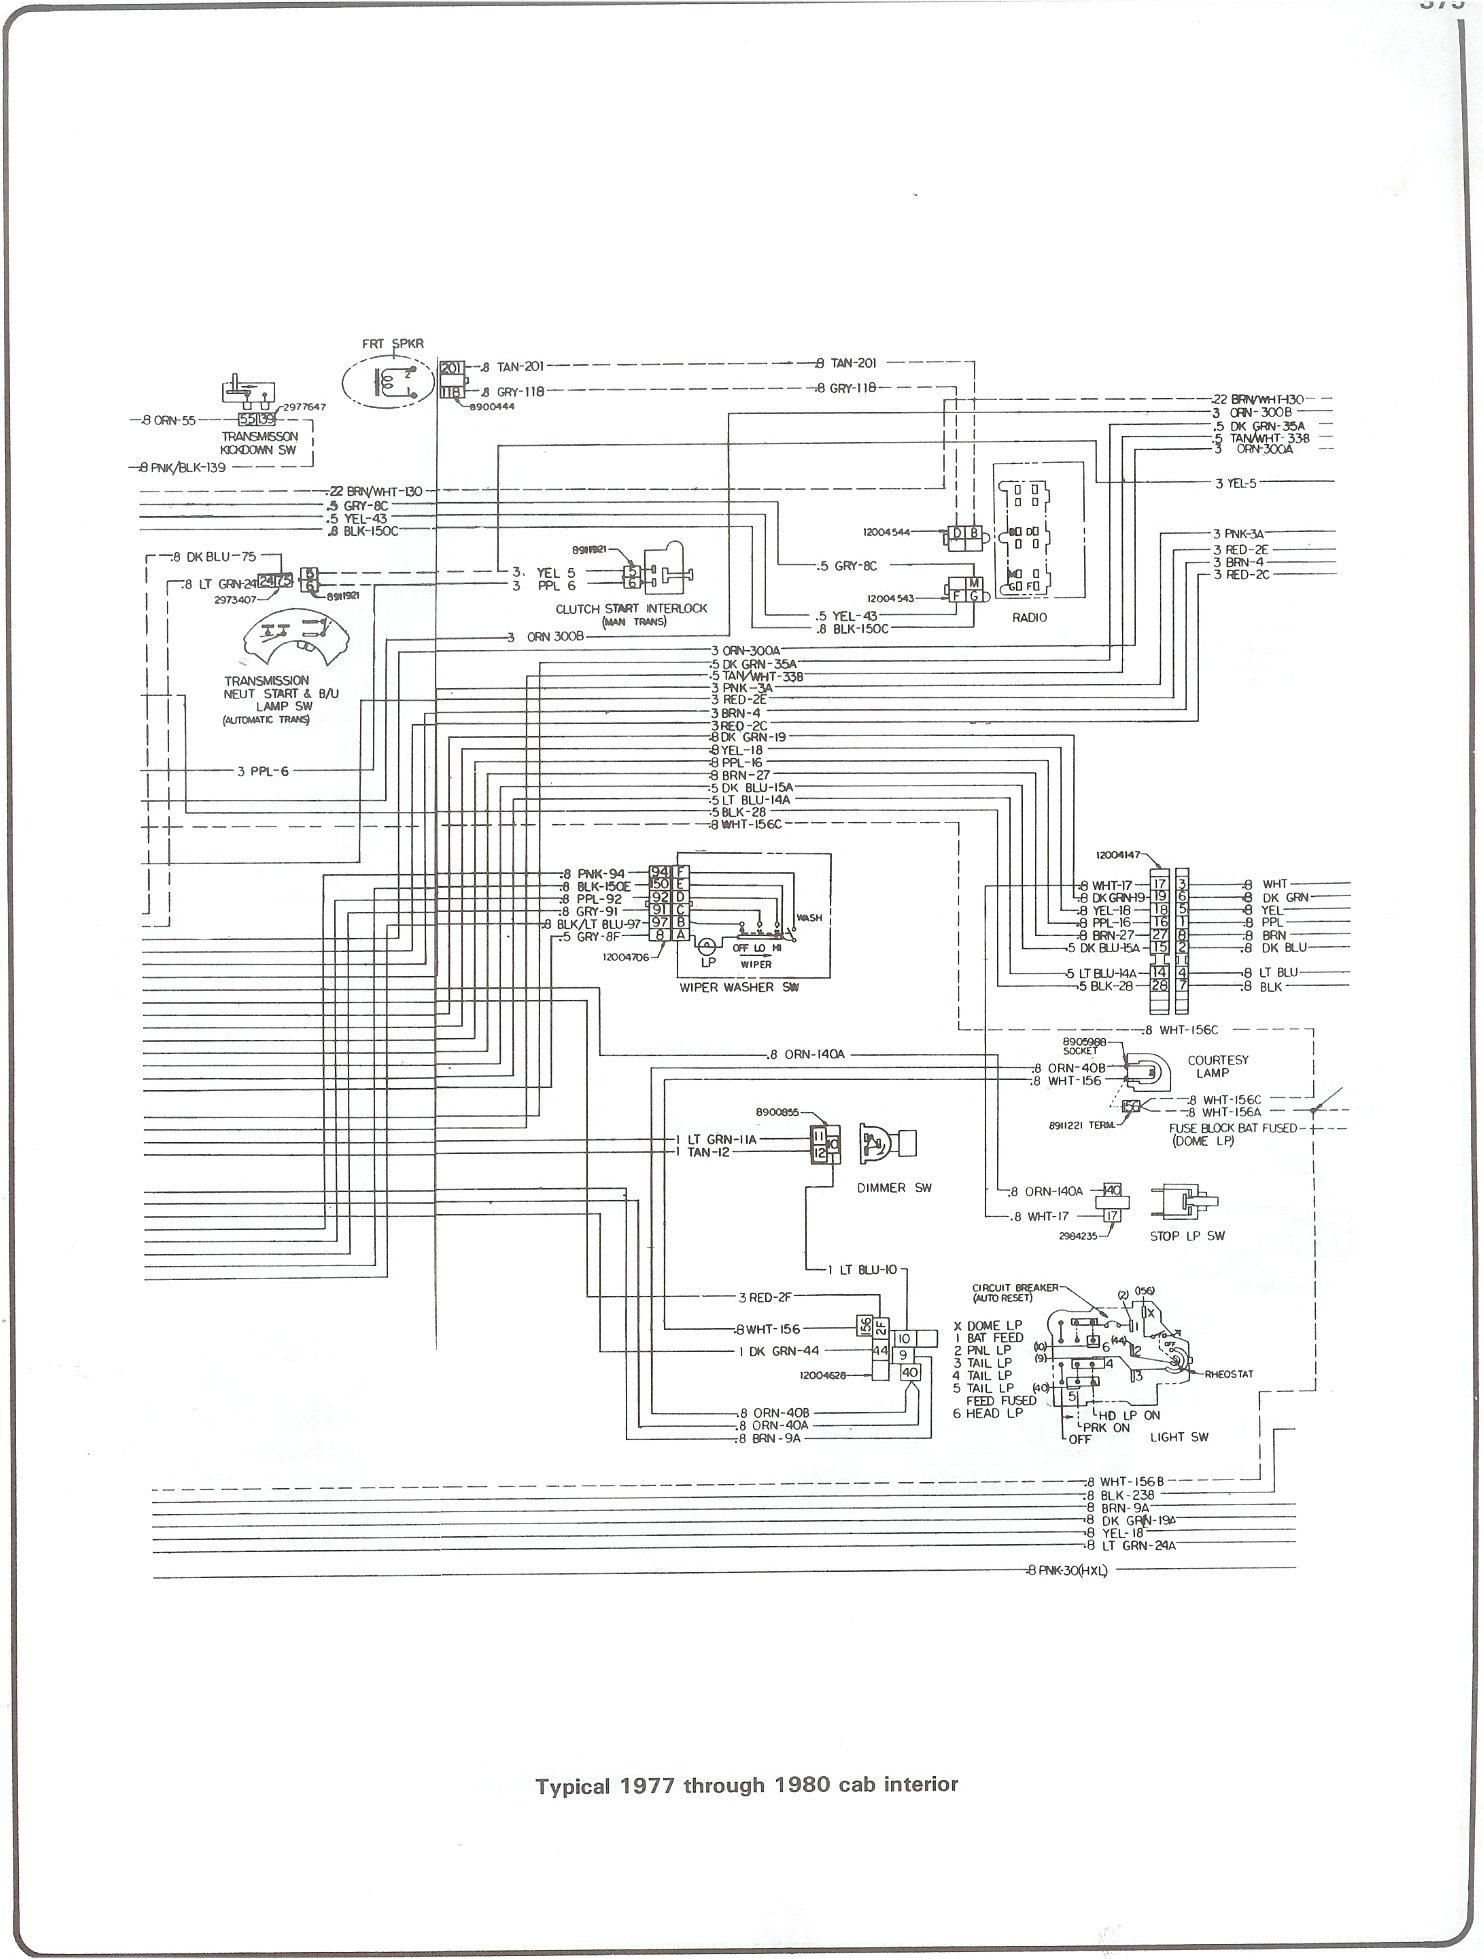 hight resolution of 77 80 cab interior complete 73 87 wiring diagrams 77 80 cab interior gm hei schematic